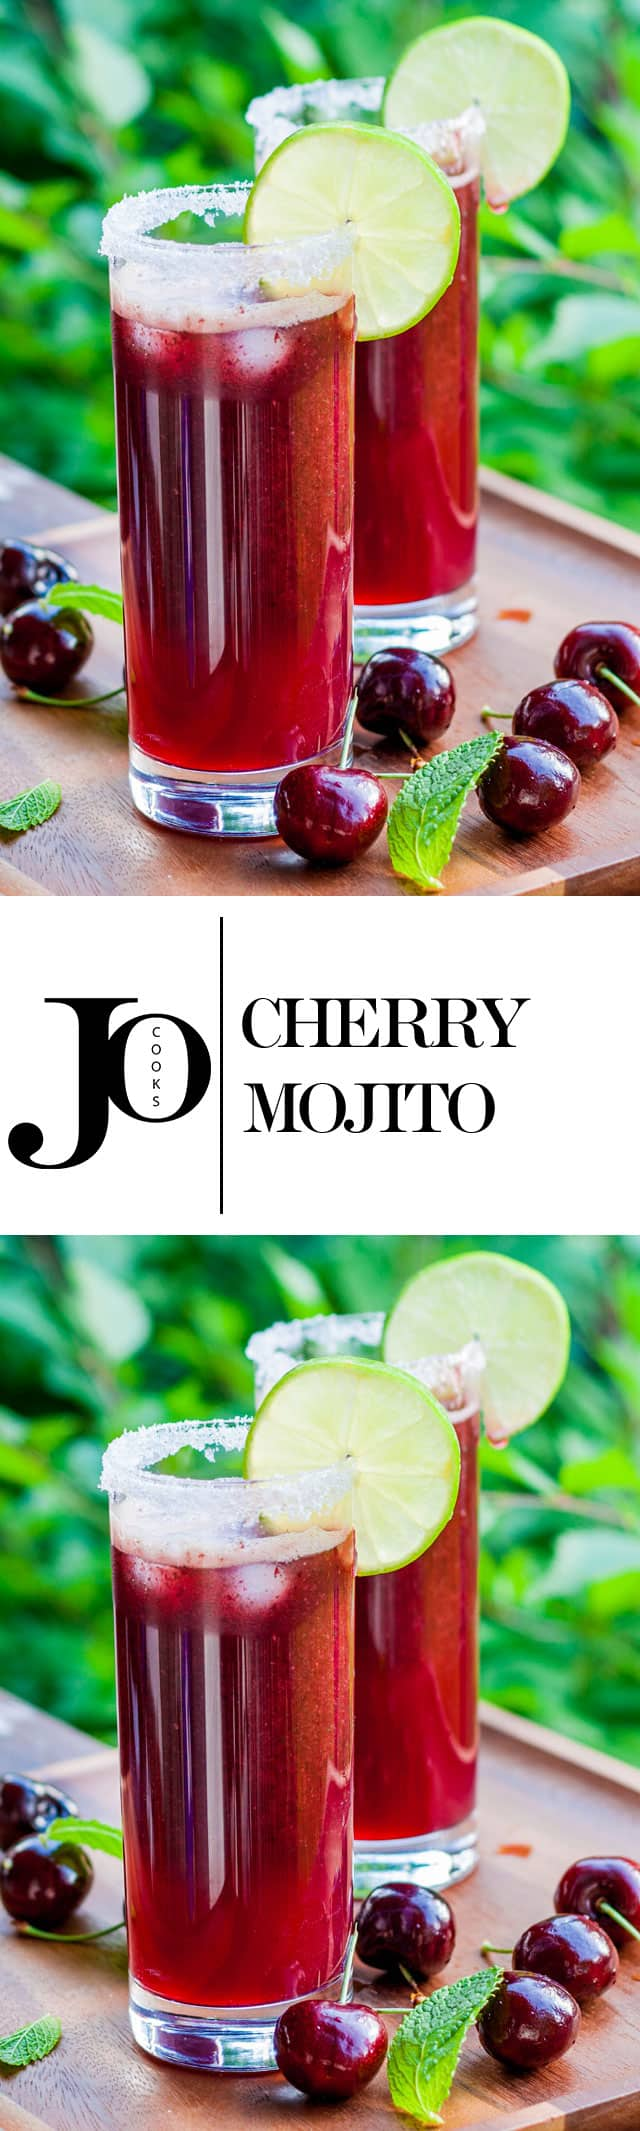 The Cherry Mojito - a favorite summer cocktail! It's slushy and super yummy!